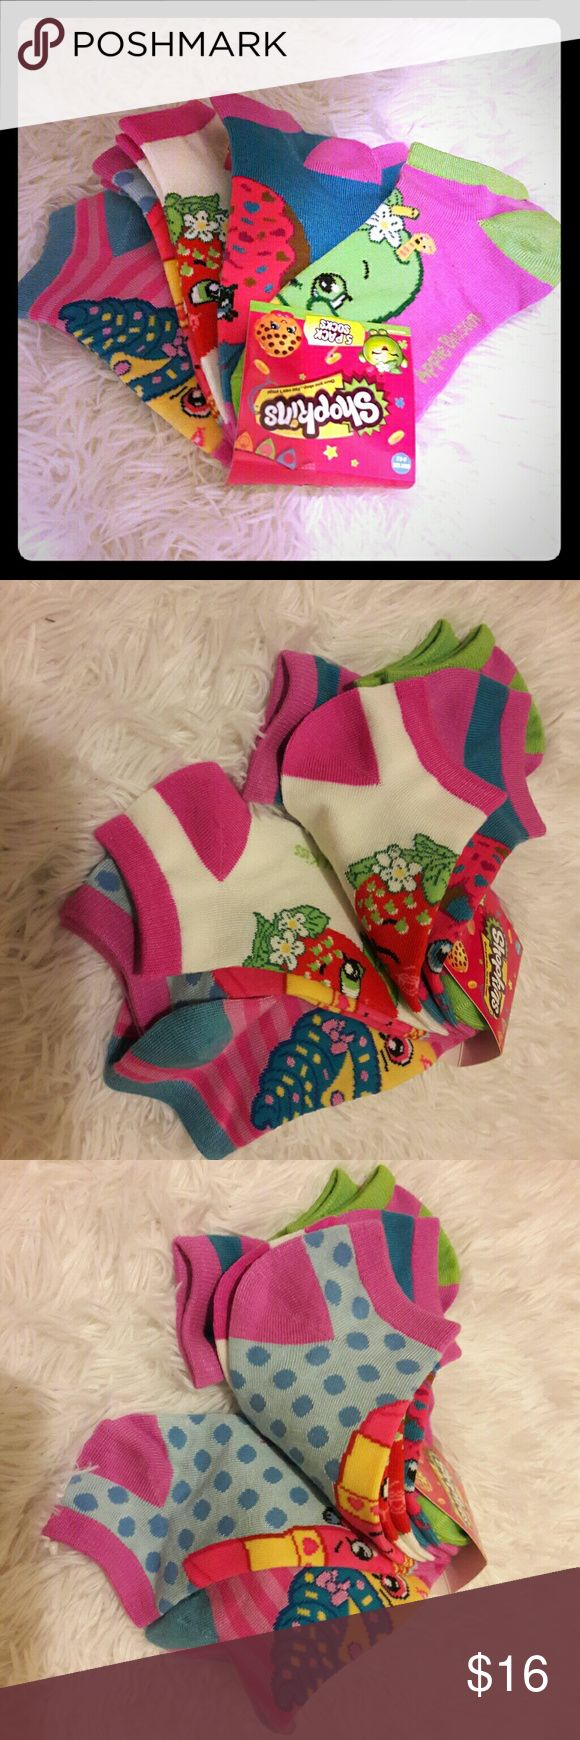 Shopkins socks for Girls 5 pairs of different characters from Shopkins...all with different colors and designs..super cute for your favorite little #SPK Lover...size is tagged for Girls size 6-8.5...SO even your favorite adult could ROCK theses yummy ADORABLE socks...what a great excuse to wear the cuties trendy socks...what's not to love..any questions please feel free to ask! ....#Shopkins #socks #SPK #girl #adult #collectables Shopkins Accessories Socks & Tights